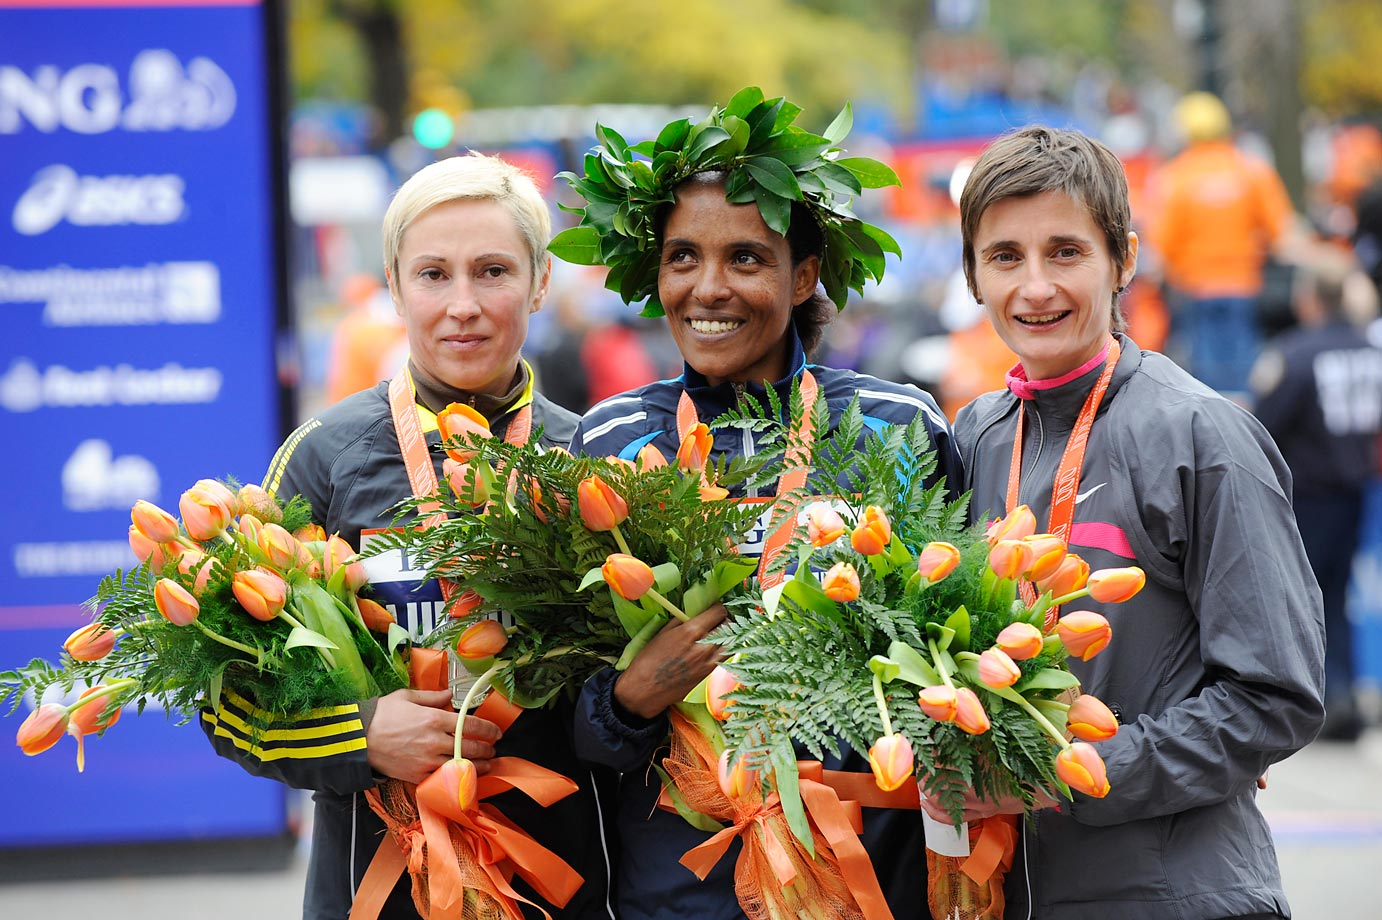 The top three finishers in the women's division, from left: Ludmila Petrova (2nd, 02:29:00) of Russia;  Derartu Tulu ( 1st, 02:28:52) of Ethiopia; and Christelle Daunay (3rd, 02:29:16) of France.